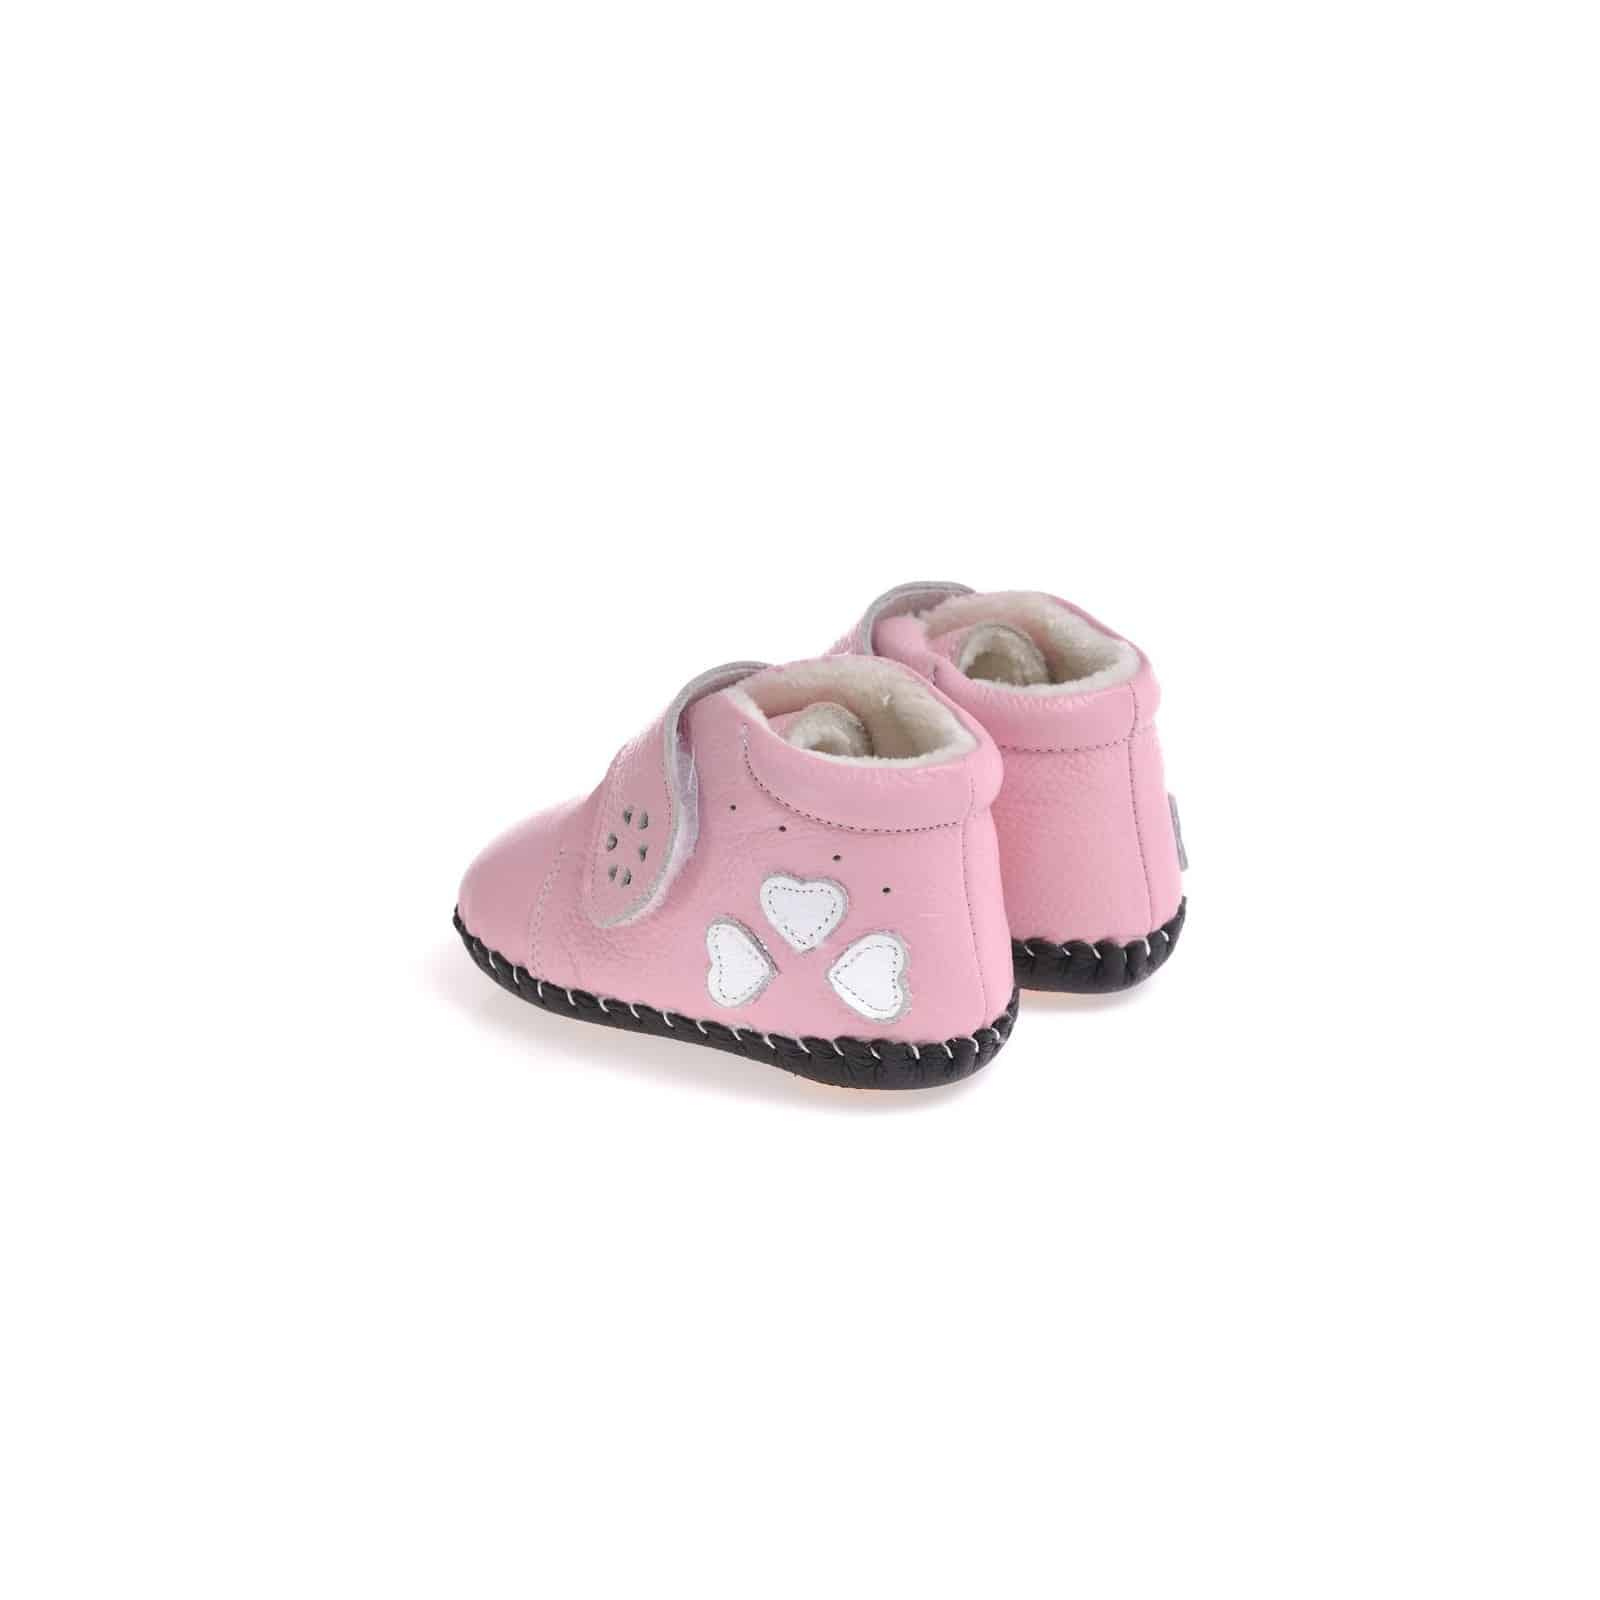 The shoes are made of premium grade leather, and their footwear system allows you to choose shoes designed for first steps, next steps and big steps. Stride Rite: Stride Rite offers shoes for baby's first steps that are adjustable, durable and flexible.